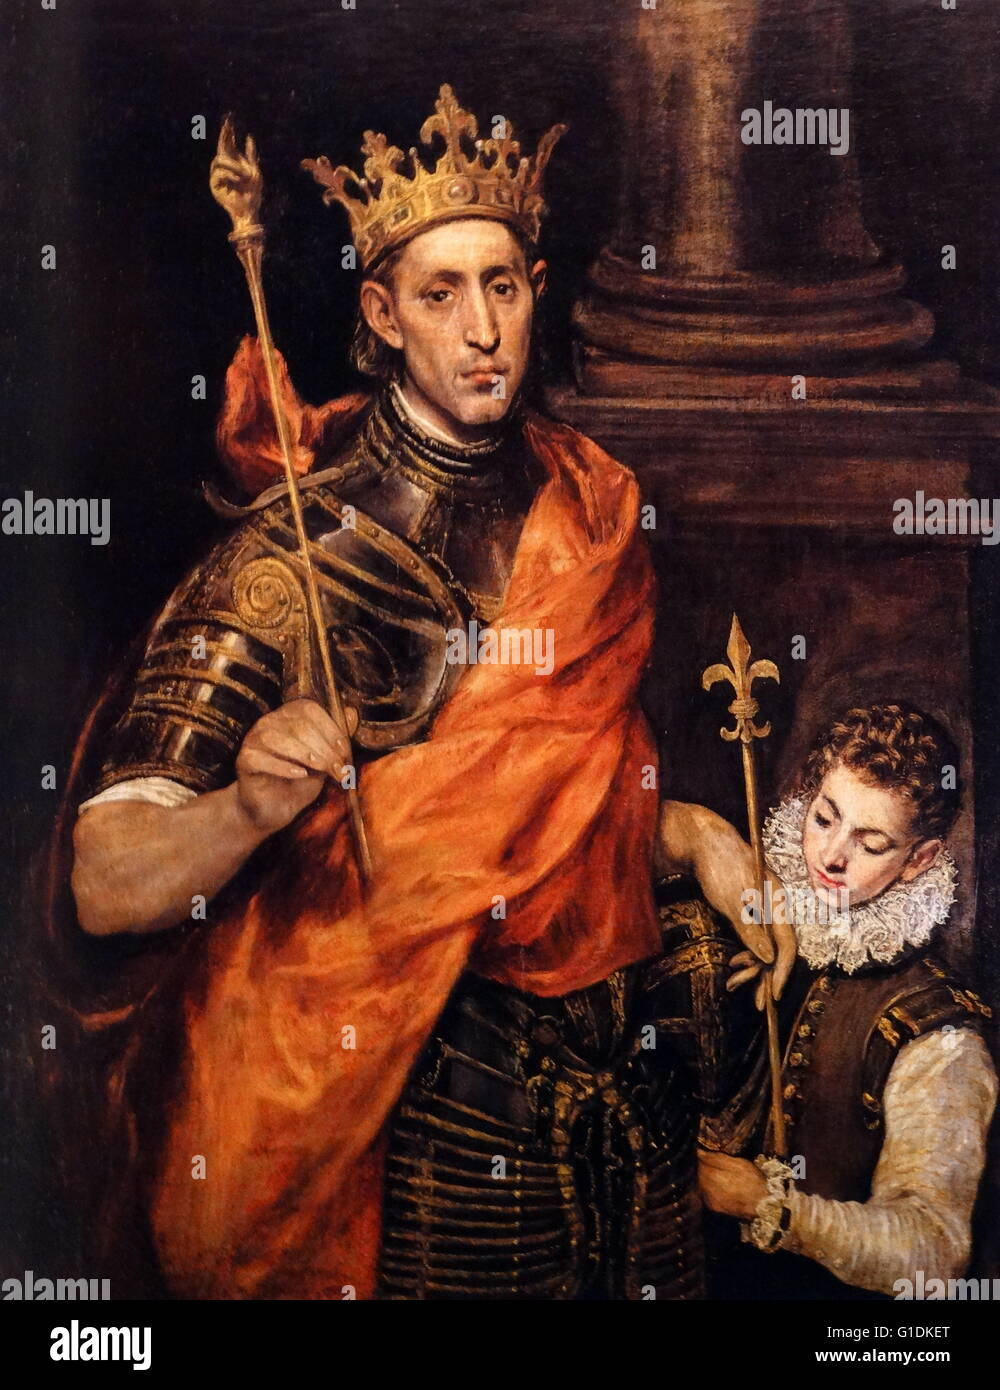 Painting titled 'Saint Louis, King of France' by El Greco - Stock Image